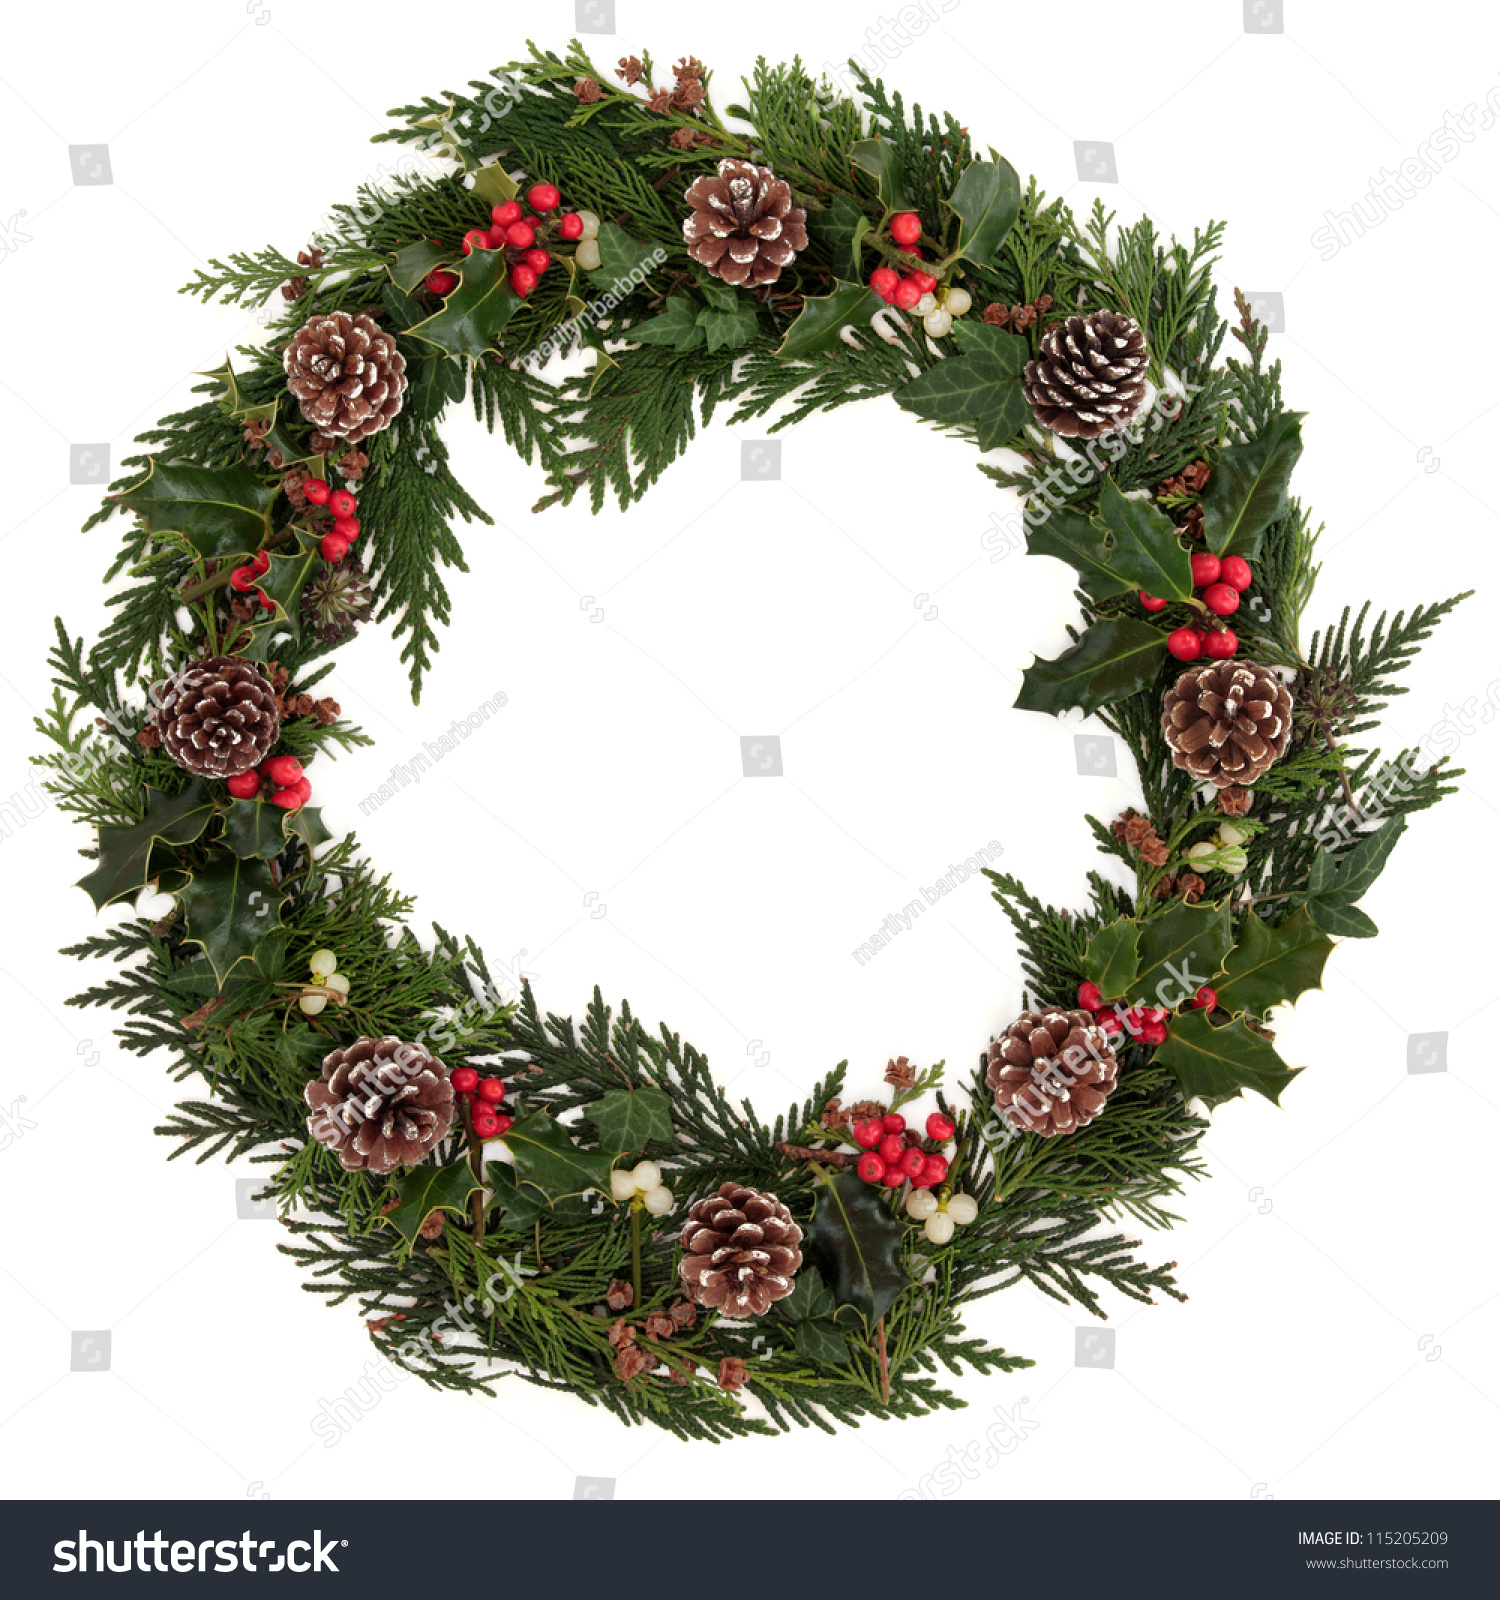 Christmas Decorative Wreath Holly Ivy Mistletoe Stock ...